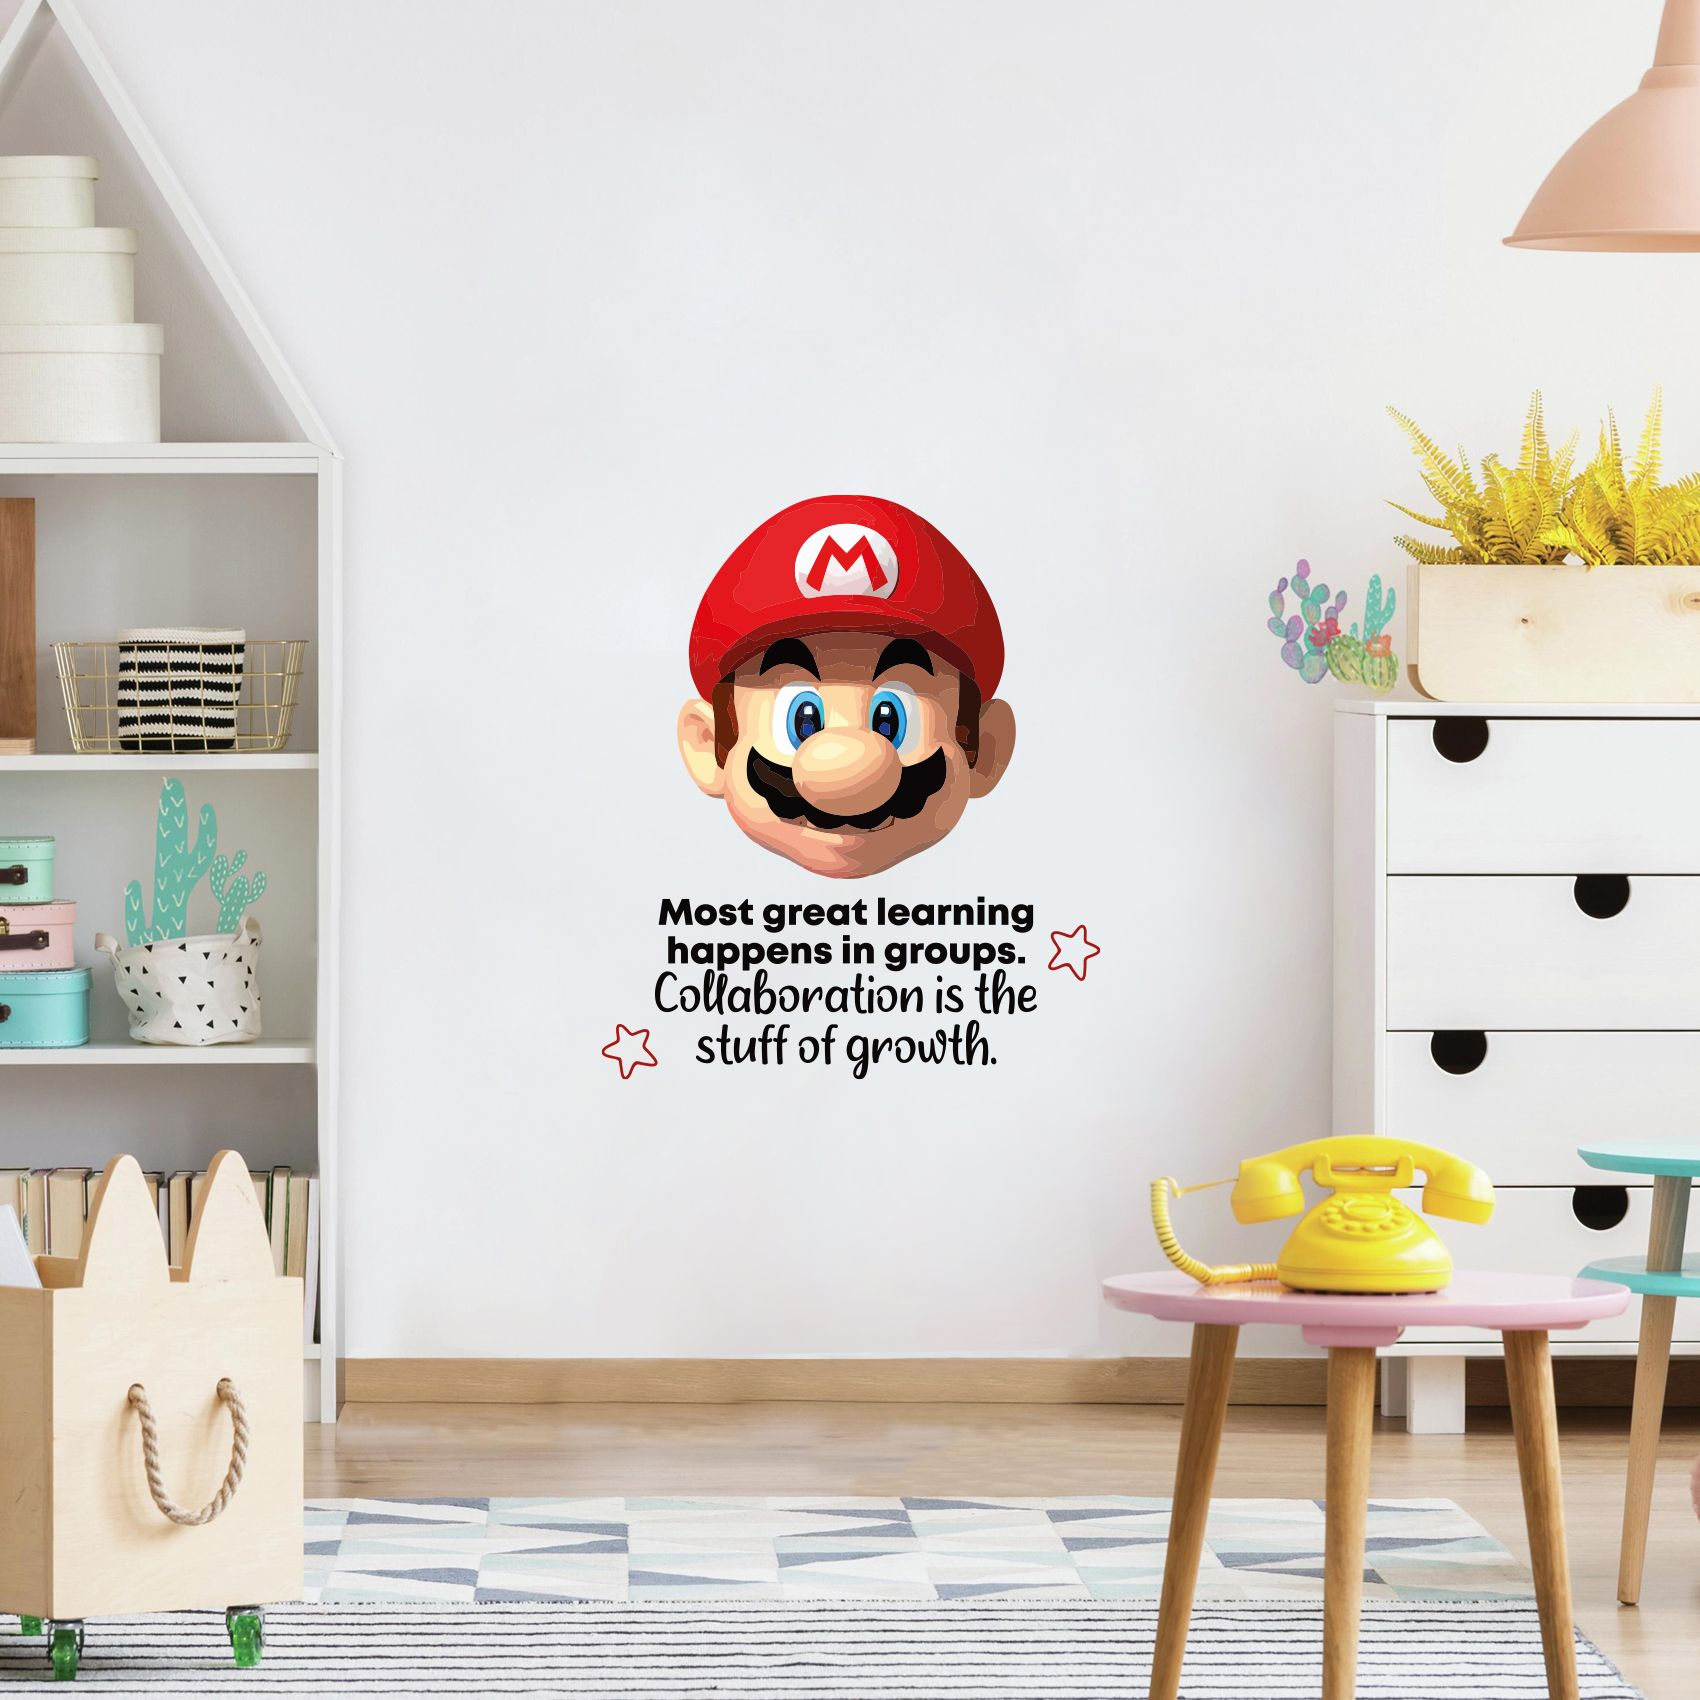 Great Learning Mario Game Life Quote Cartoon Quotes Decors Wall Sticker Art Design Decal For Girls Boys Kid Room Bedroom Nursery Kindergarten Home Decor Stickers Wall Art Vinyl Decoration 20x18 Inch